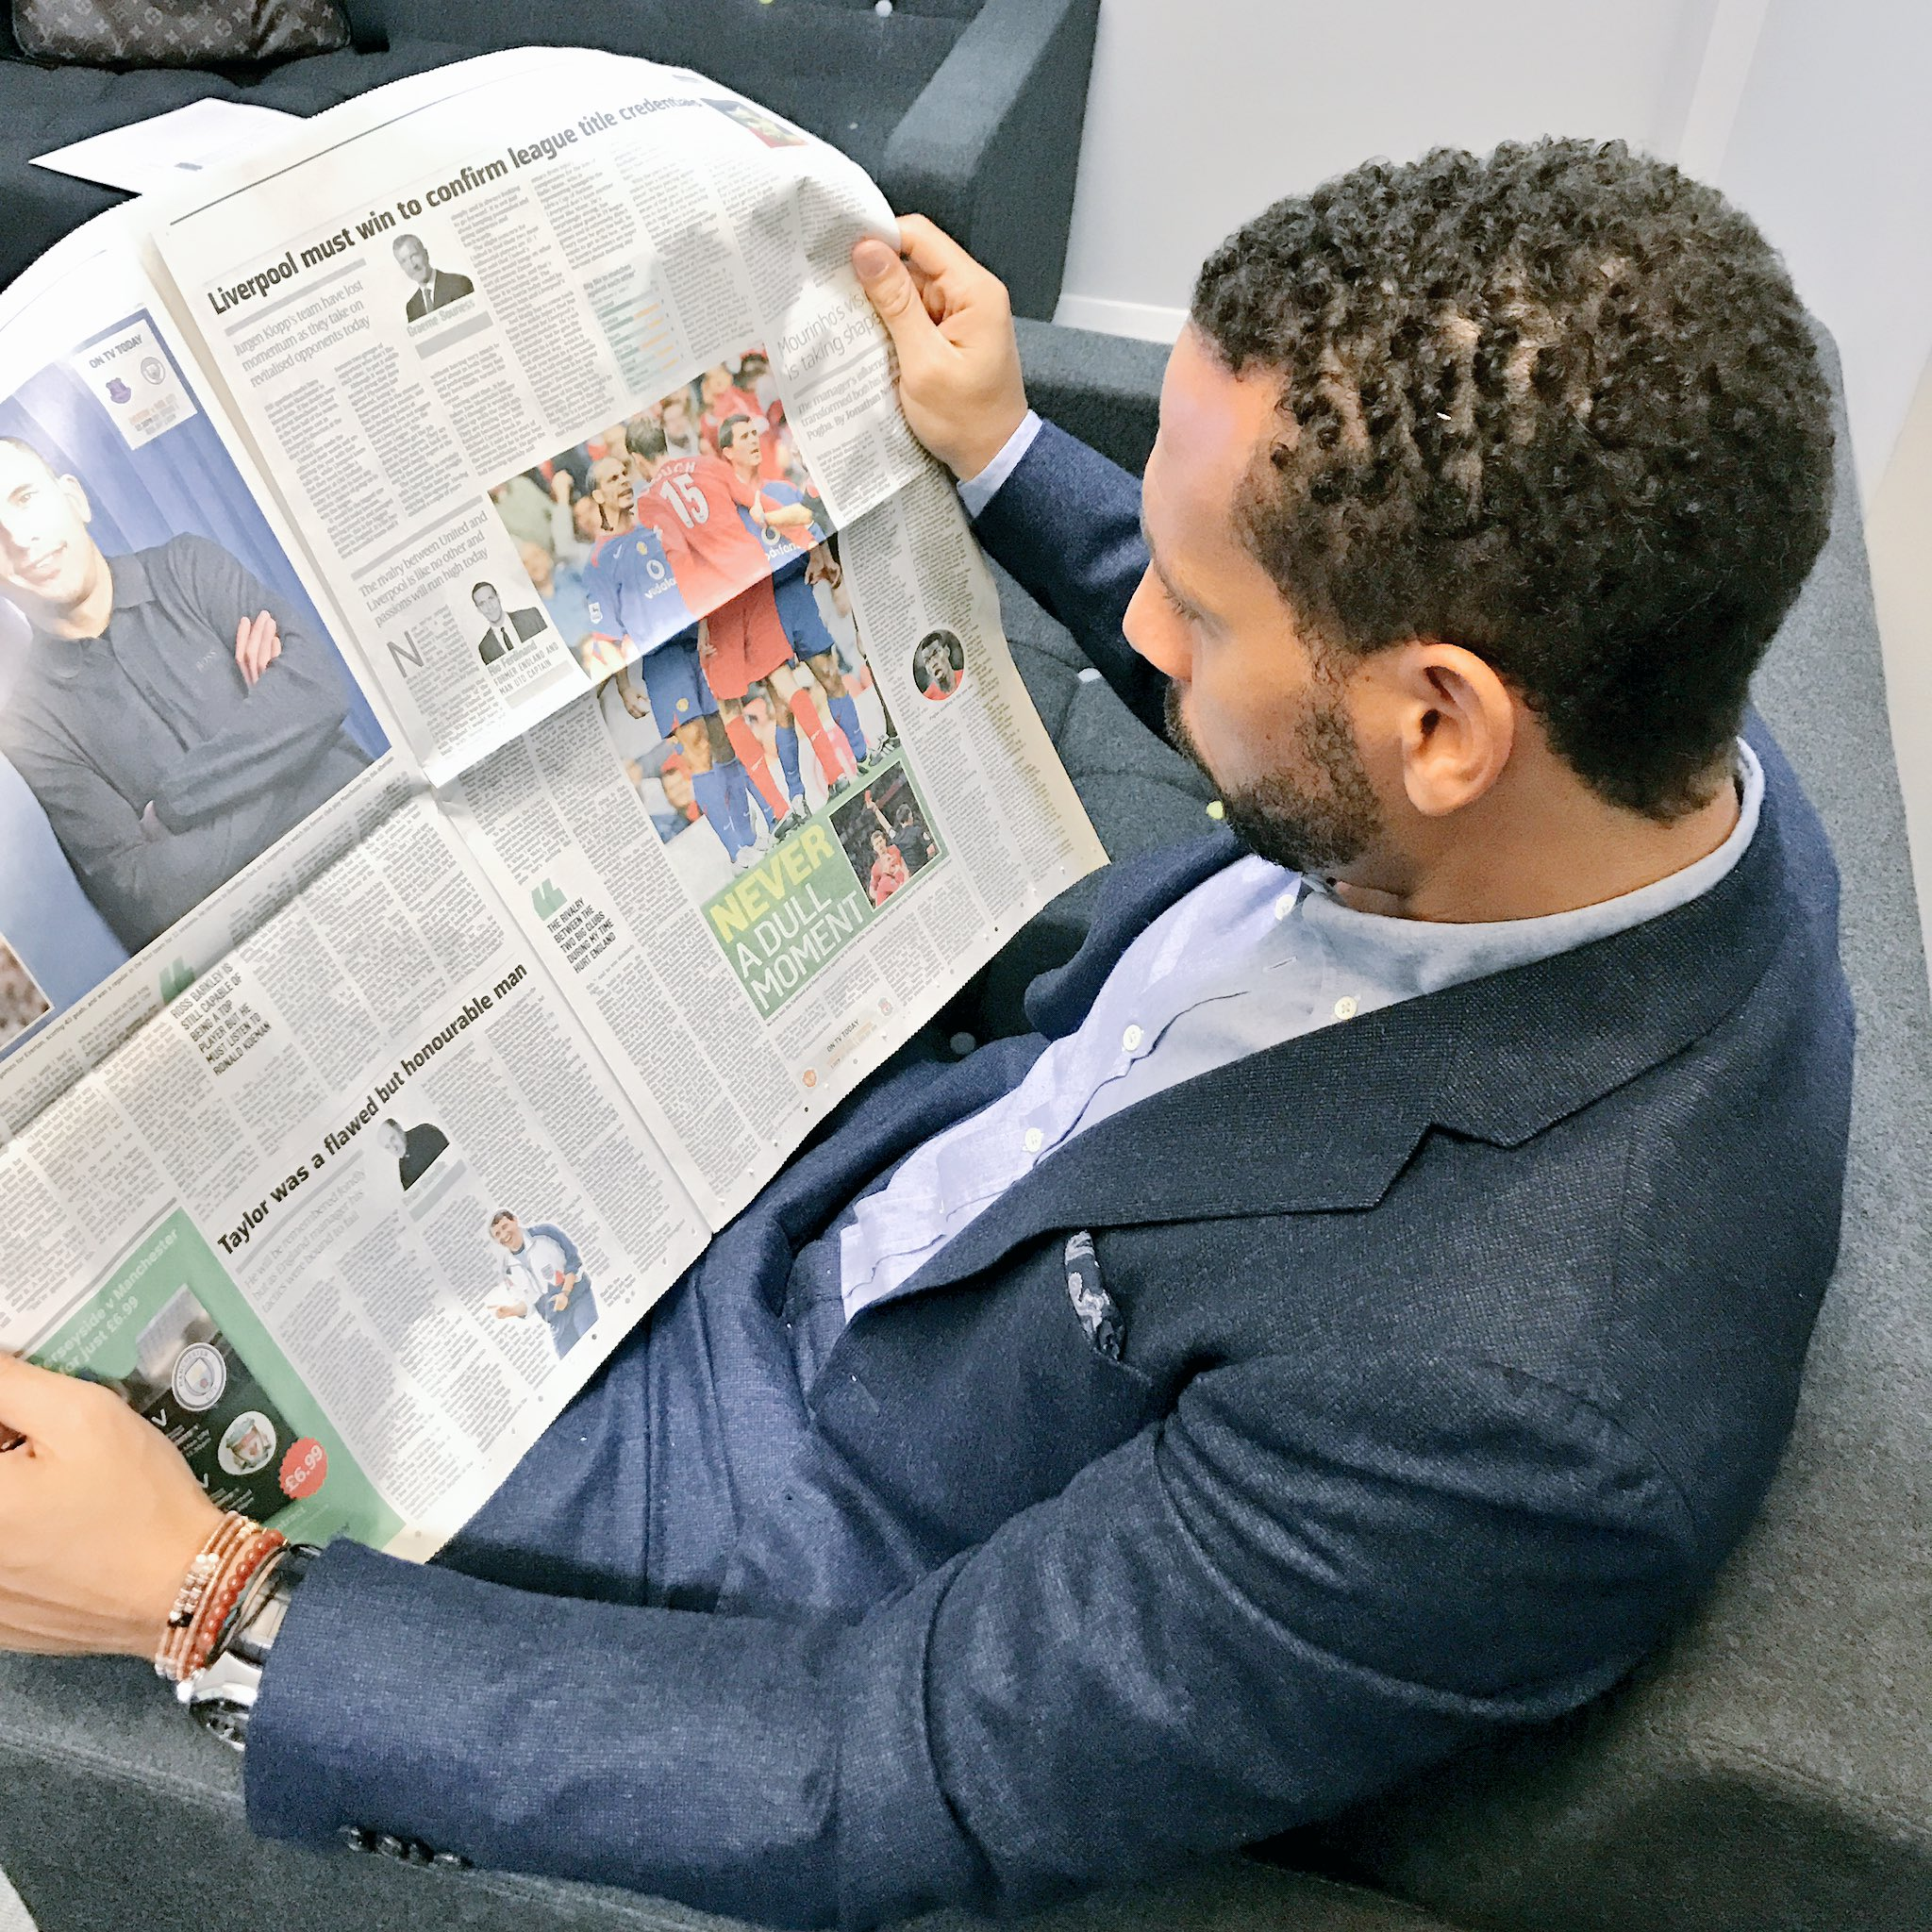 In the green room... reading my column today in @TimesSport ... the emotions/mentality... biggest game for the fans! https://t.co/s75JlFpEgF